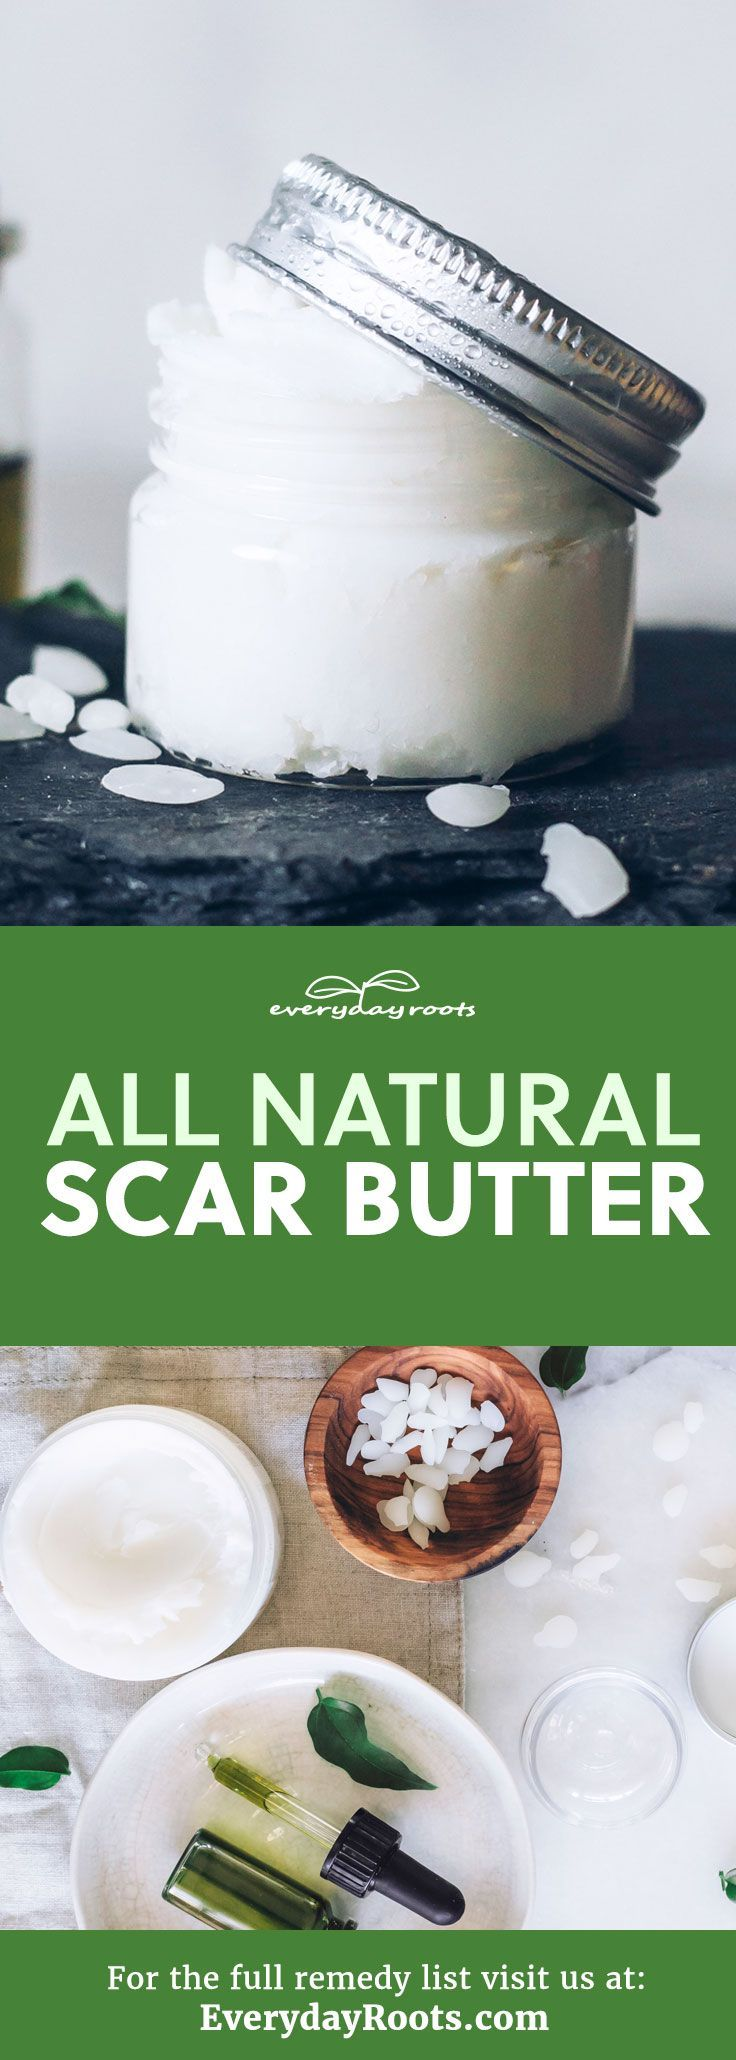 Use this homemade scar butter with shea and avocado oil. | Everyday Roots #DIY  #NaturalScarButter